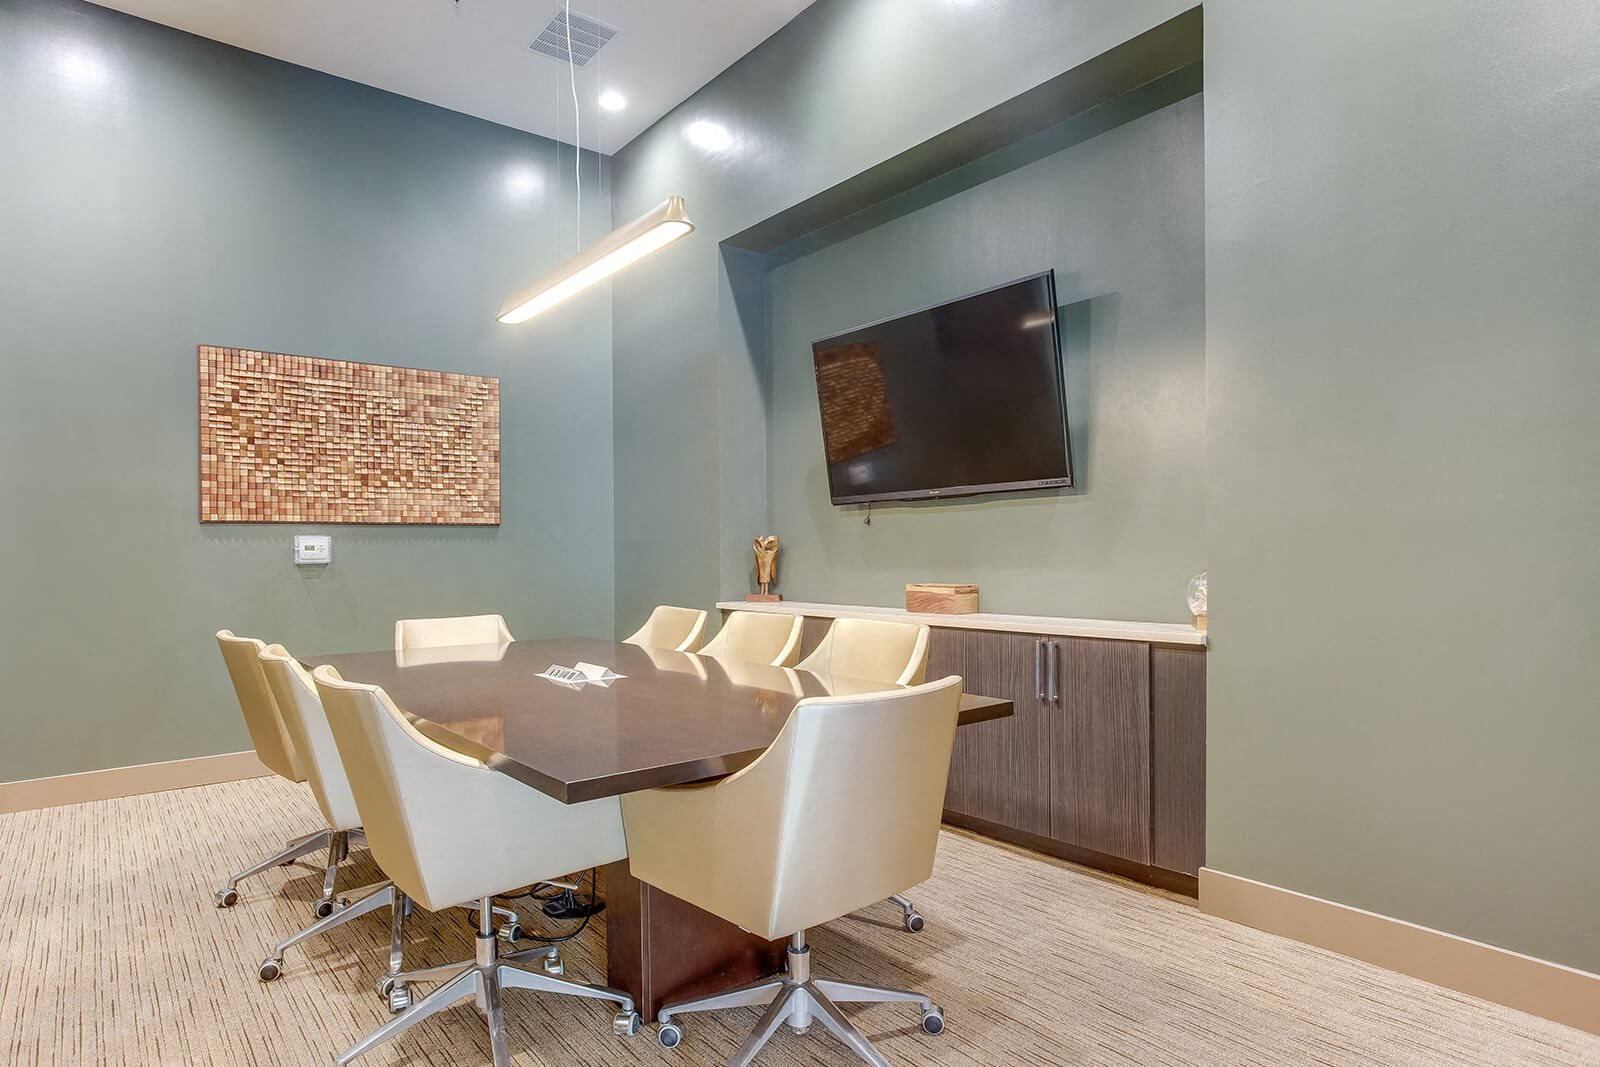 24-Hour Conference Room With Large Screen at Element 47 by Windsor, Denver, Colorado